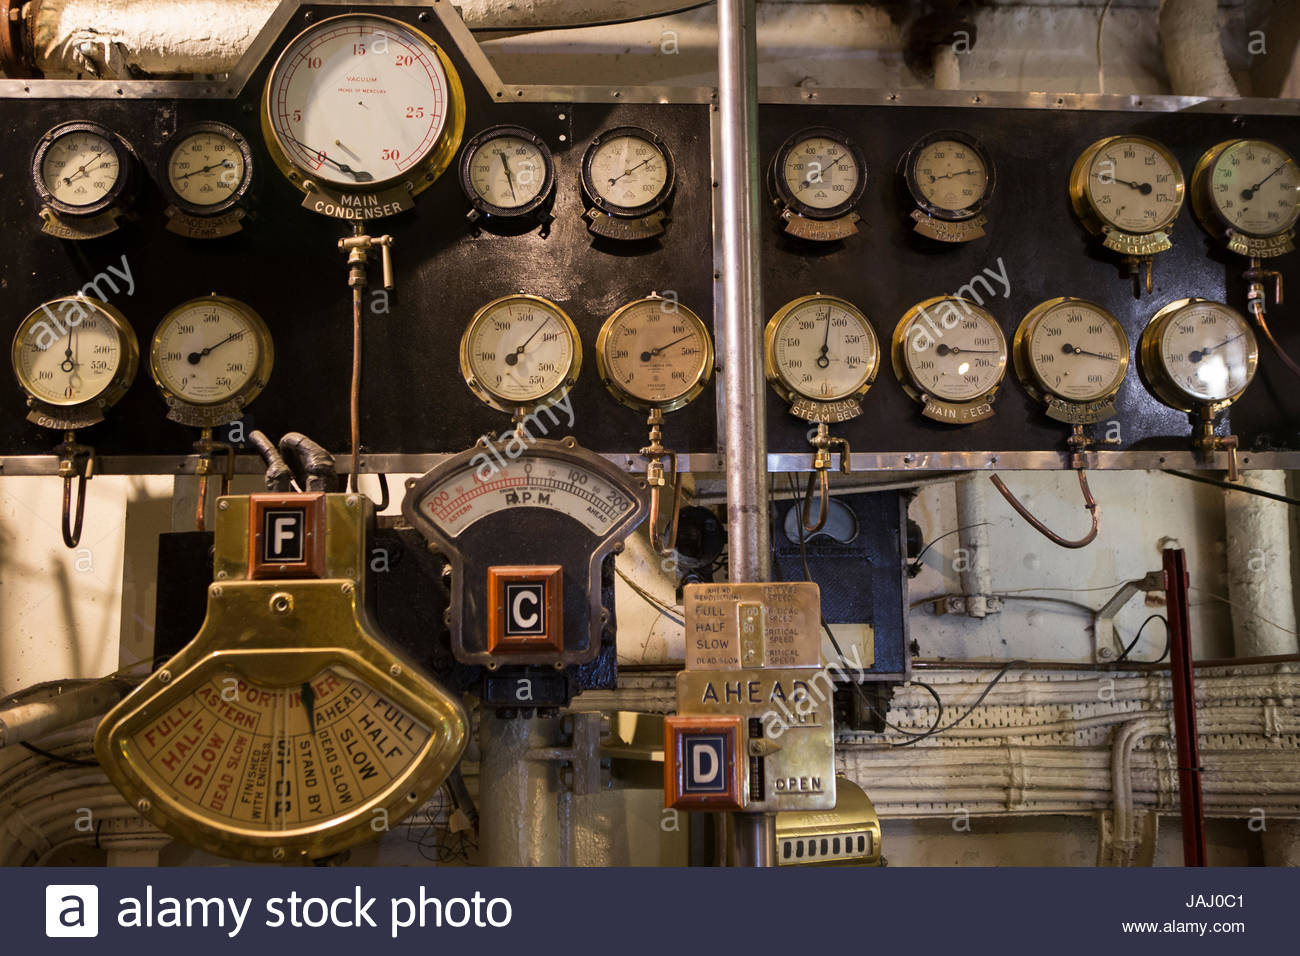 The control panel in the engine room on the RMS Queen Mary, on display in Long Beach. - Stock Image